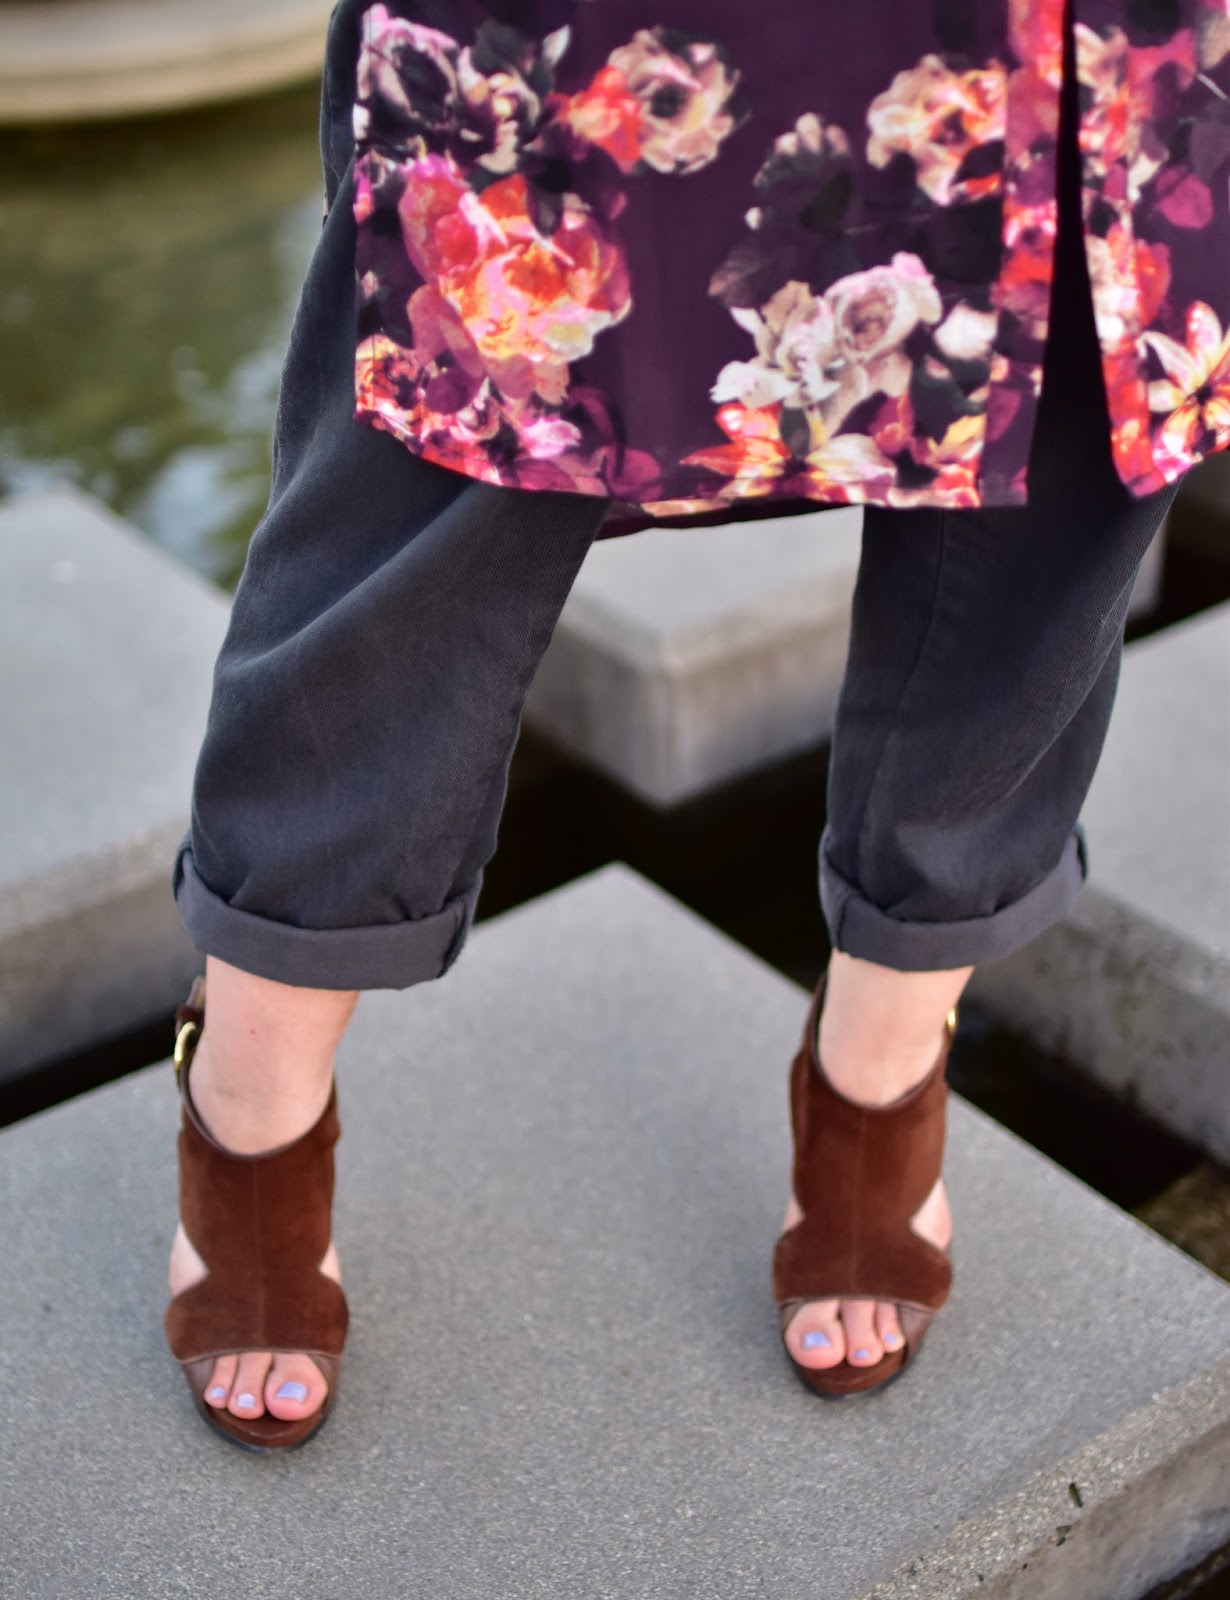 floral tunic-style blouse, boyfriend trousers, open-toe stiletto shoes